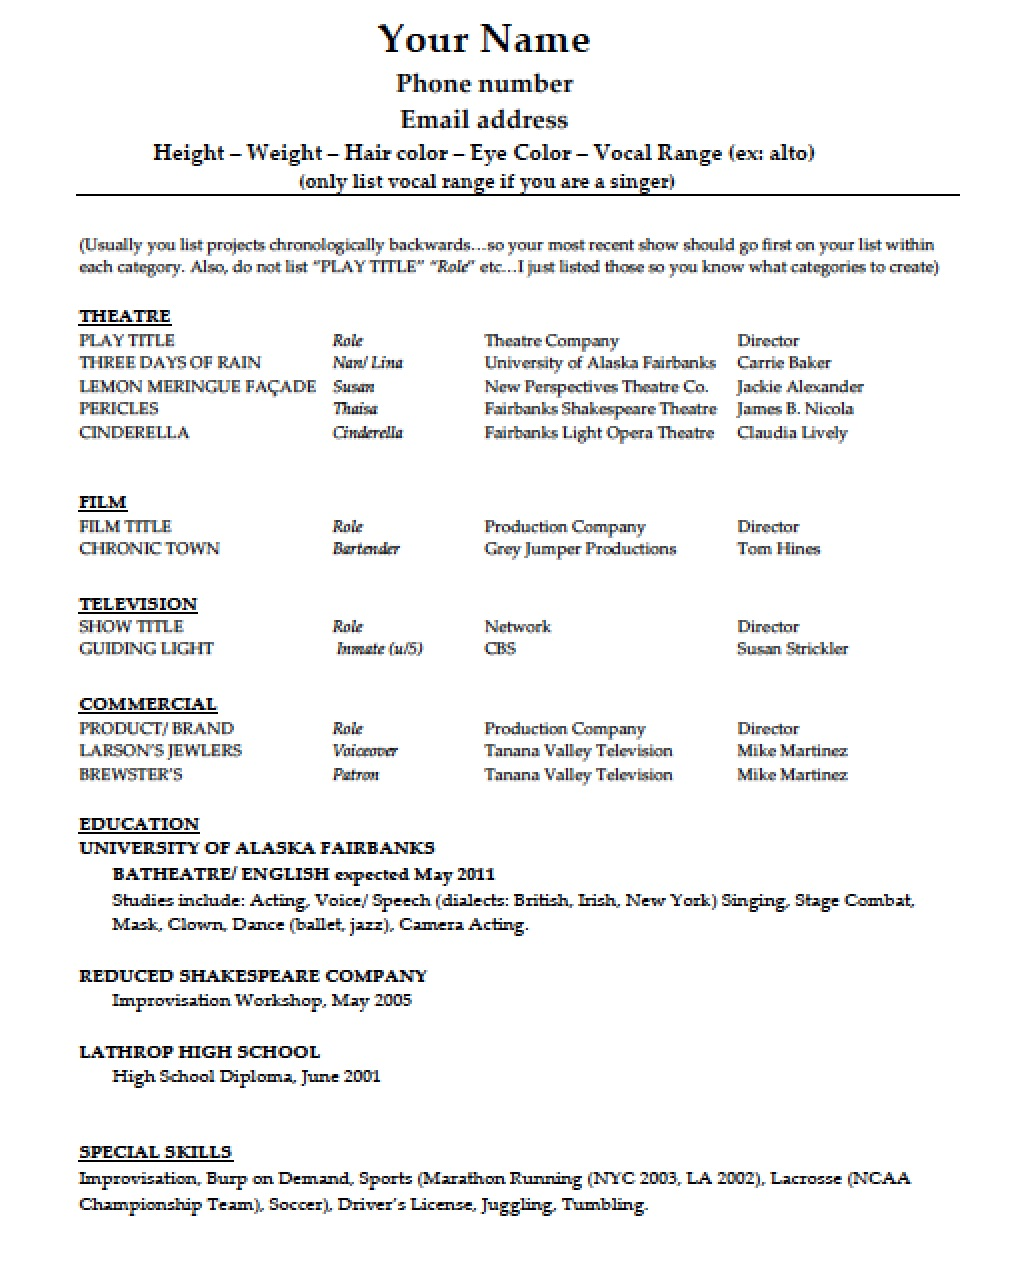 outline of resume info basic job resume templates resume template resume outline job